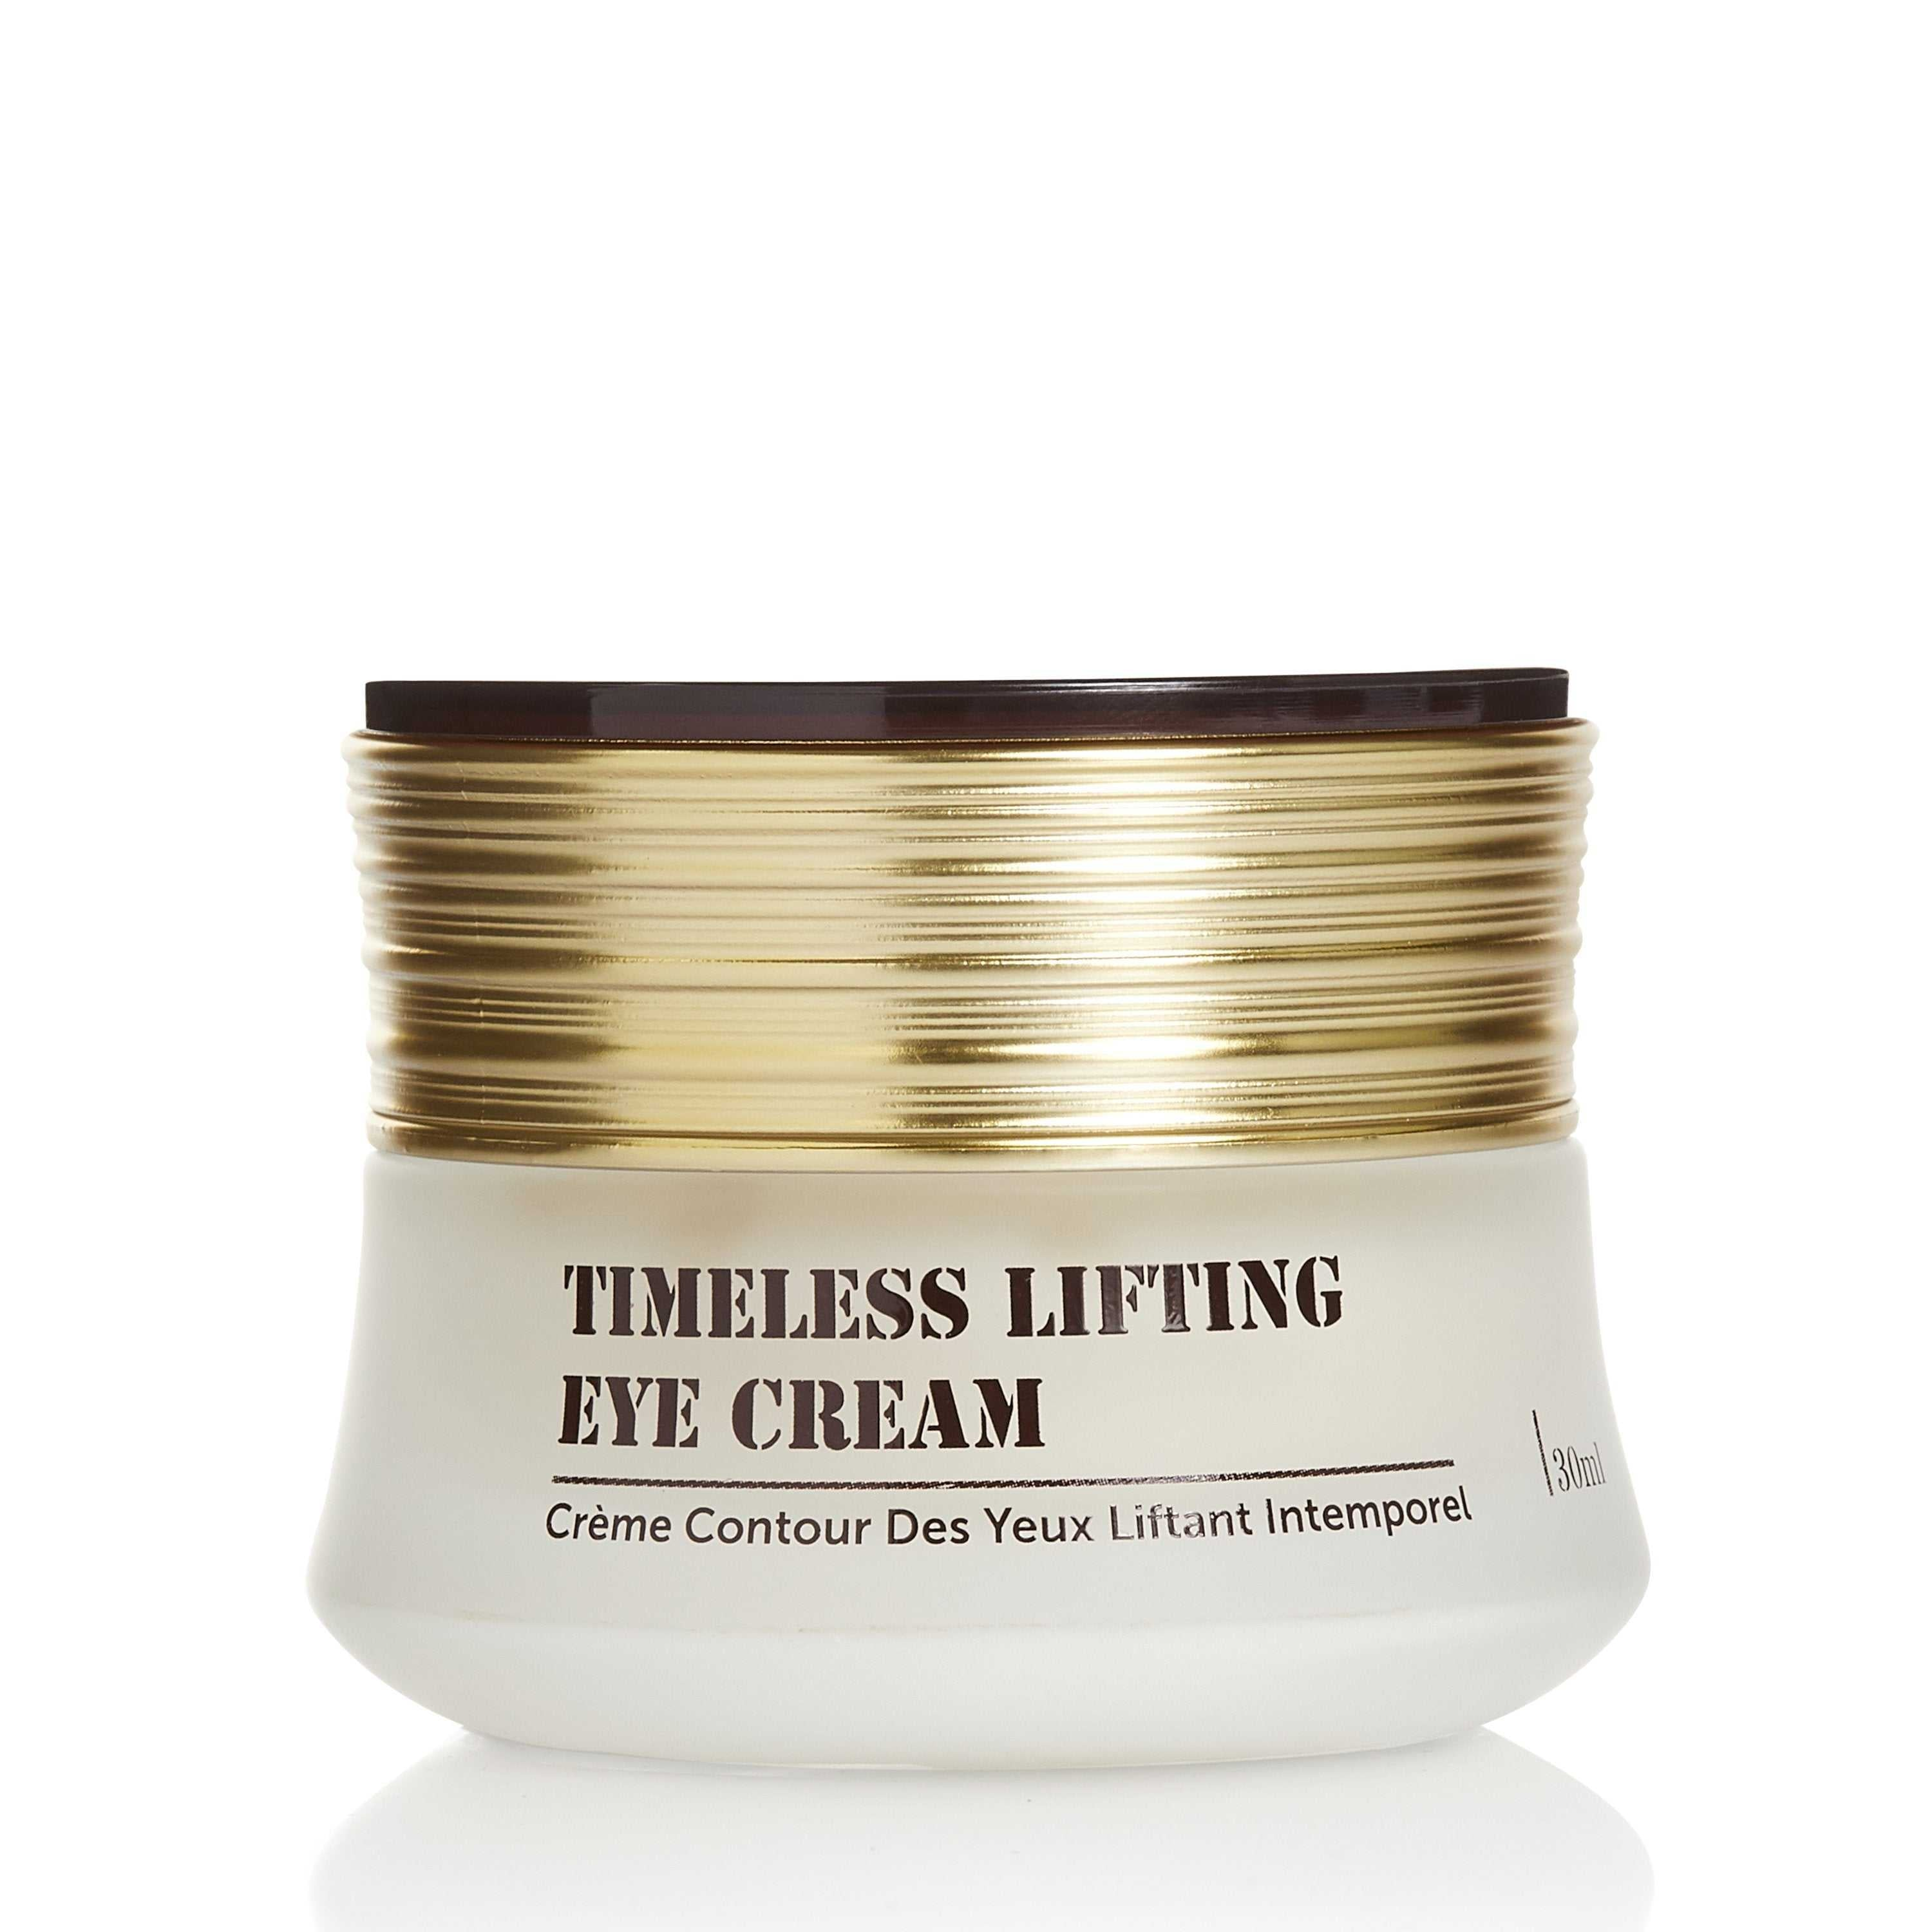 Timeless Lifting Eye Cream